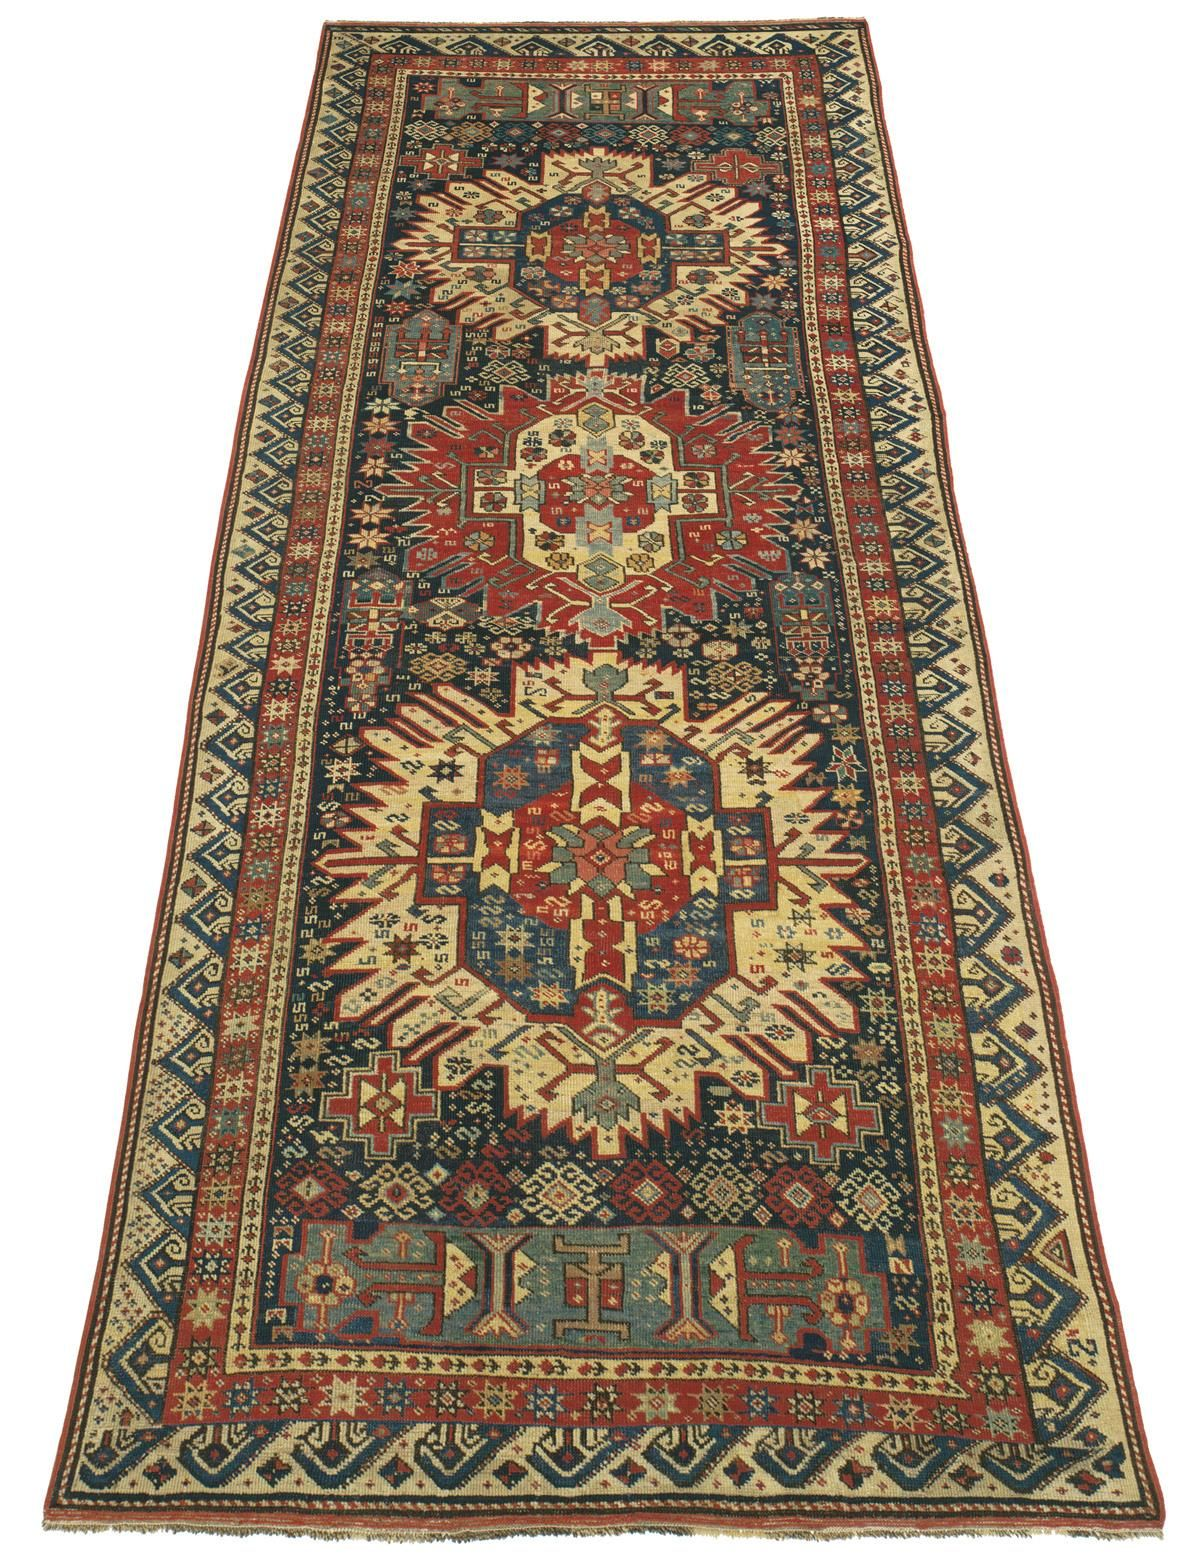 SEICHUR KUBA, Southern Caucasian (SOLD) 3ft 8in x 10ft 2in 2nd Quarter, 19th Century  http://www.claremontrug.com/antique-oriental-rugs-carpets/antique-rugs-SEICHUR+KUBA%2c+Southern+Caucasian-2674?